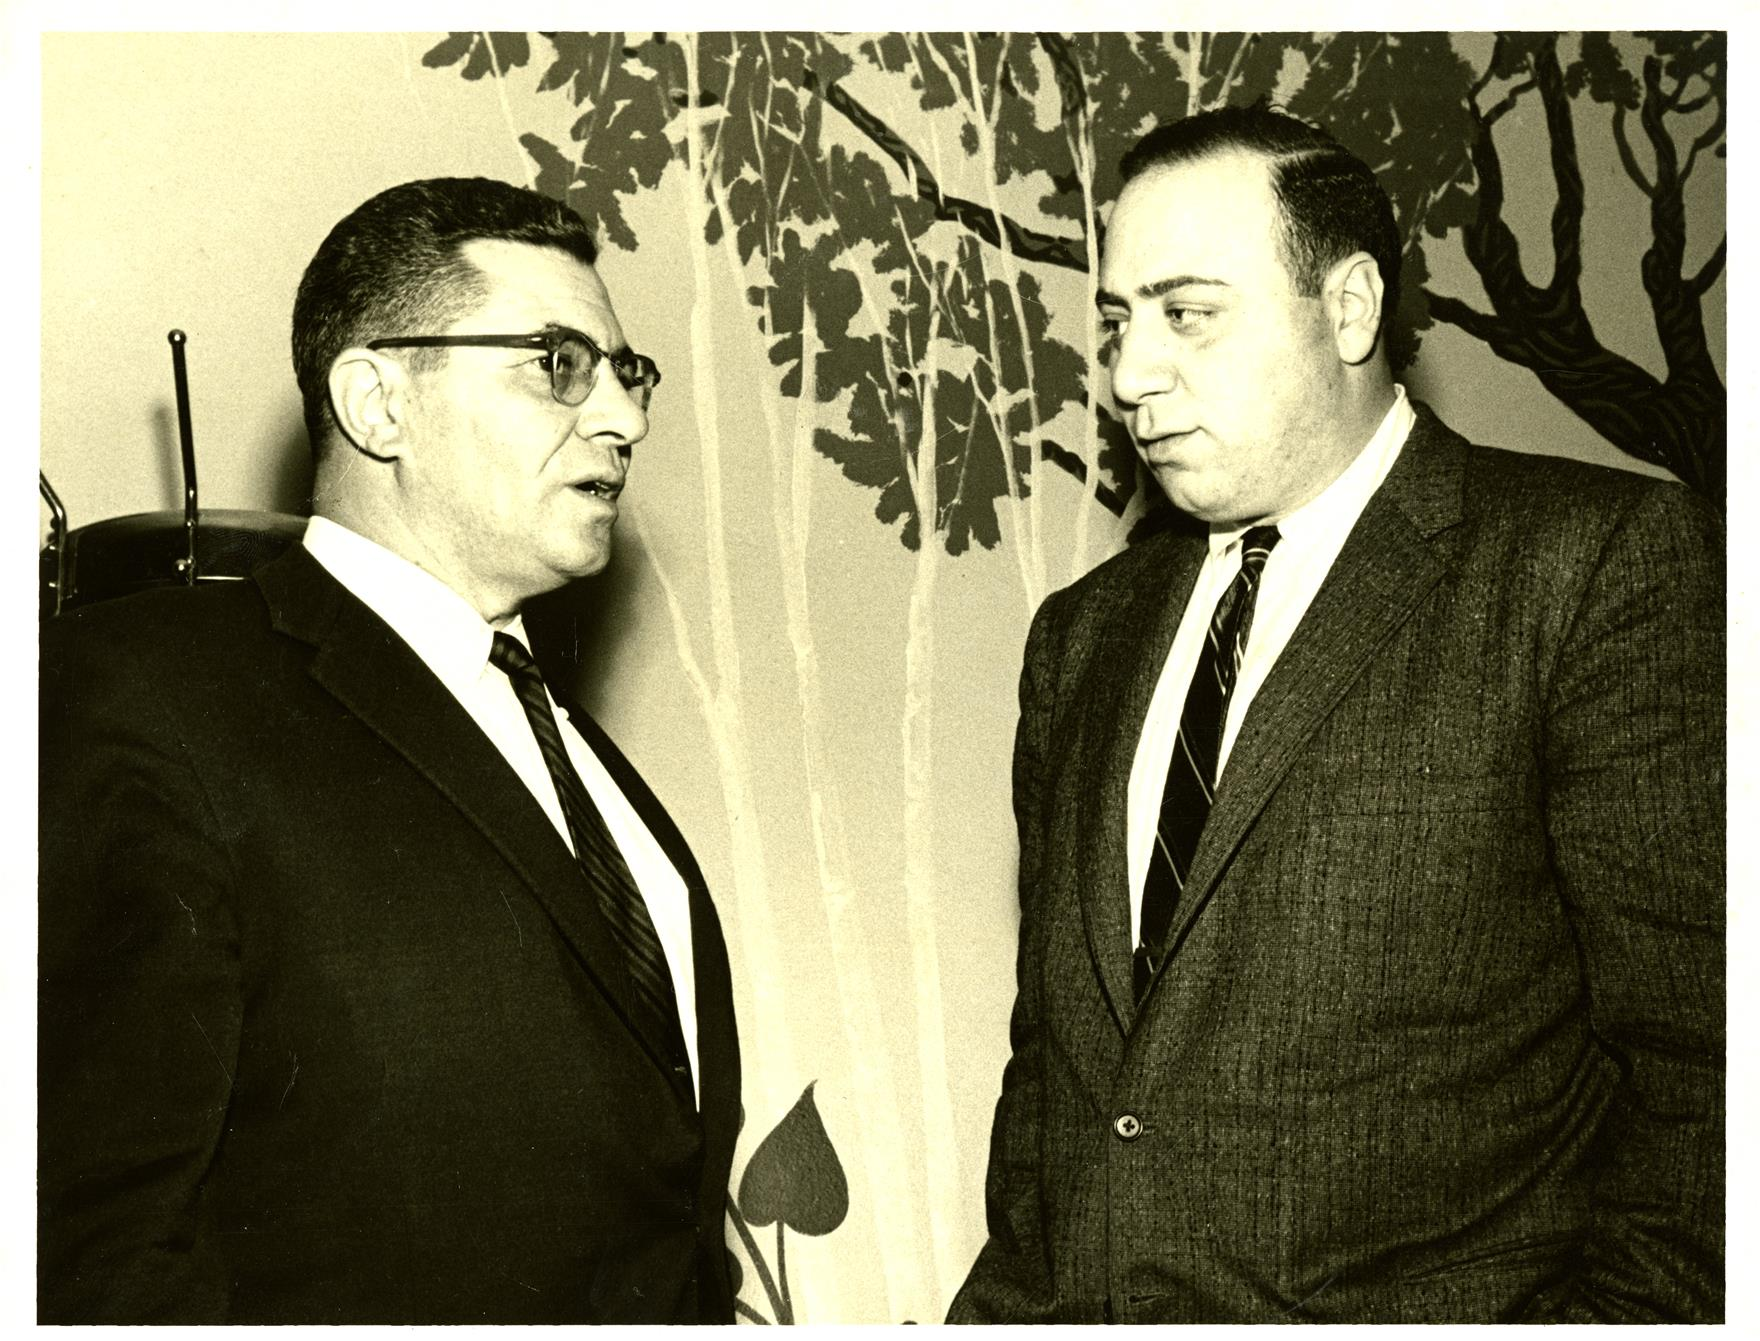 Lombardi and Vainisi